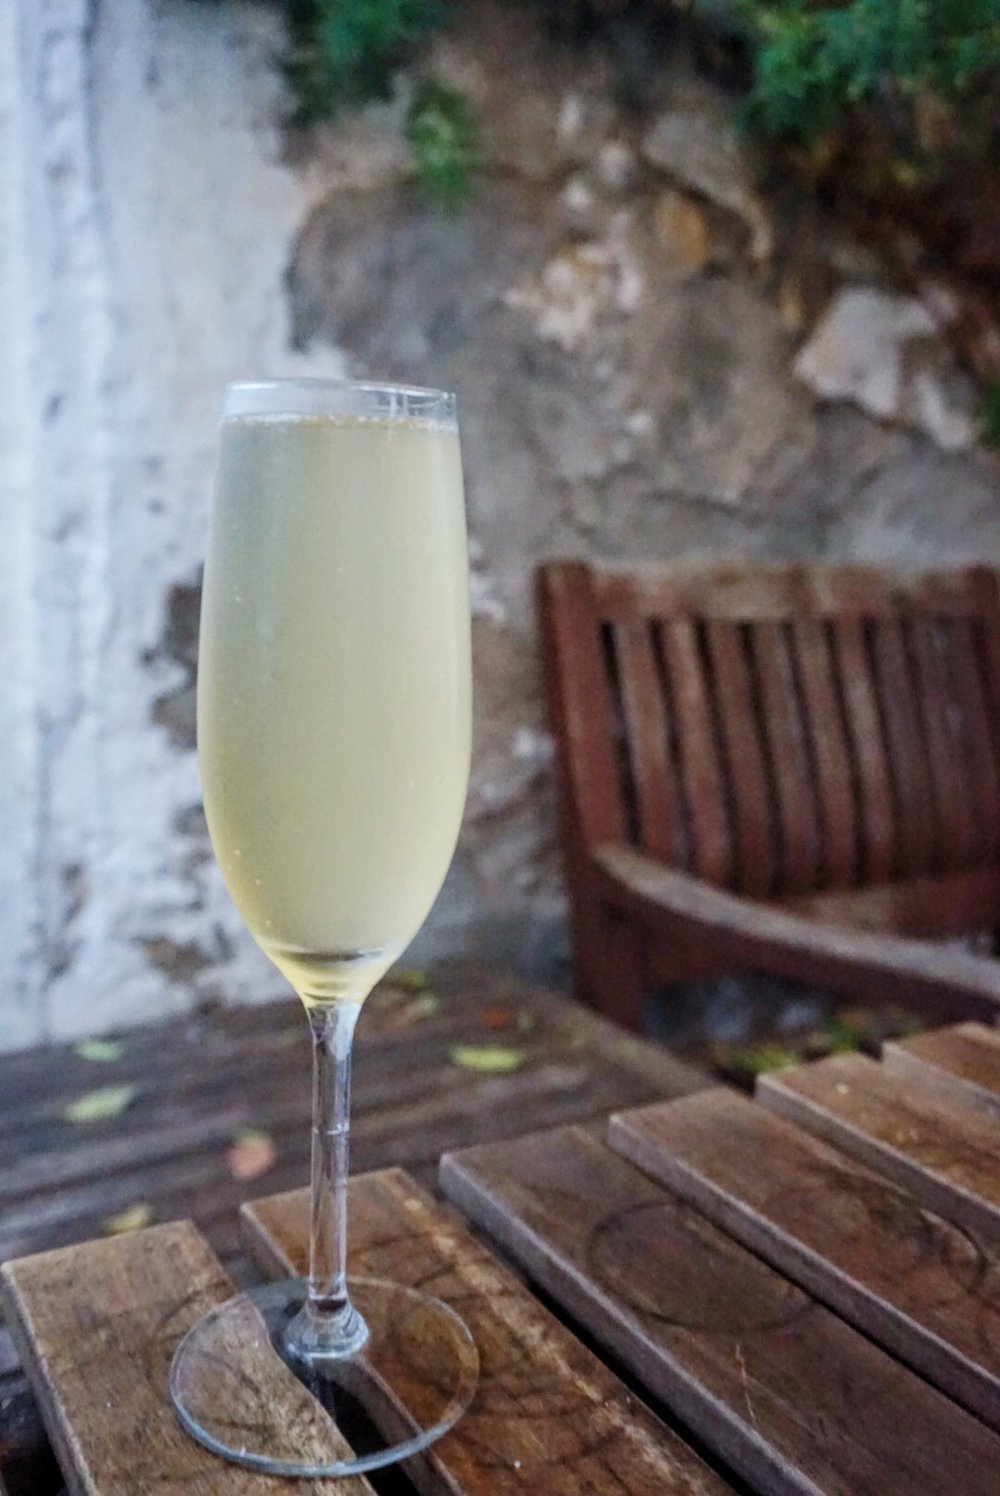 A French 75 at Mama's Cafe, Barcelona